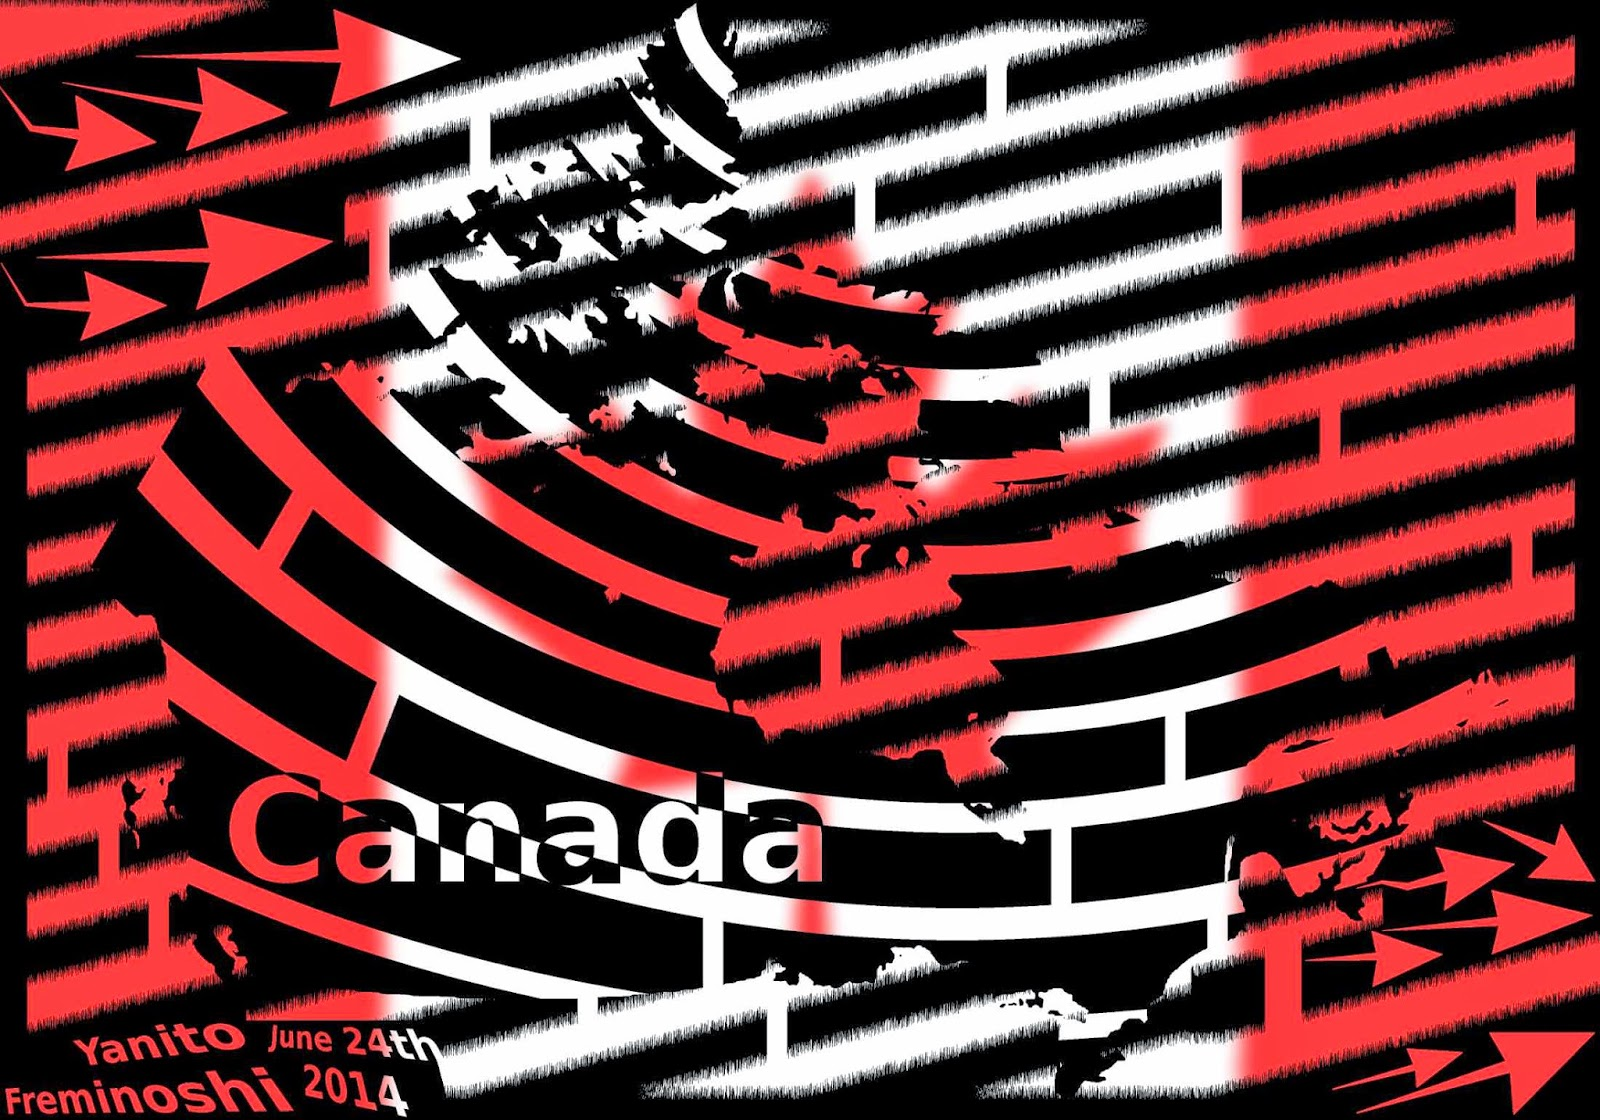 Maze of Canadian flag